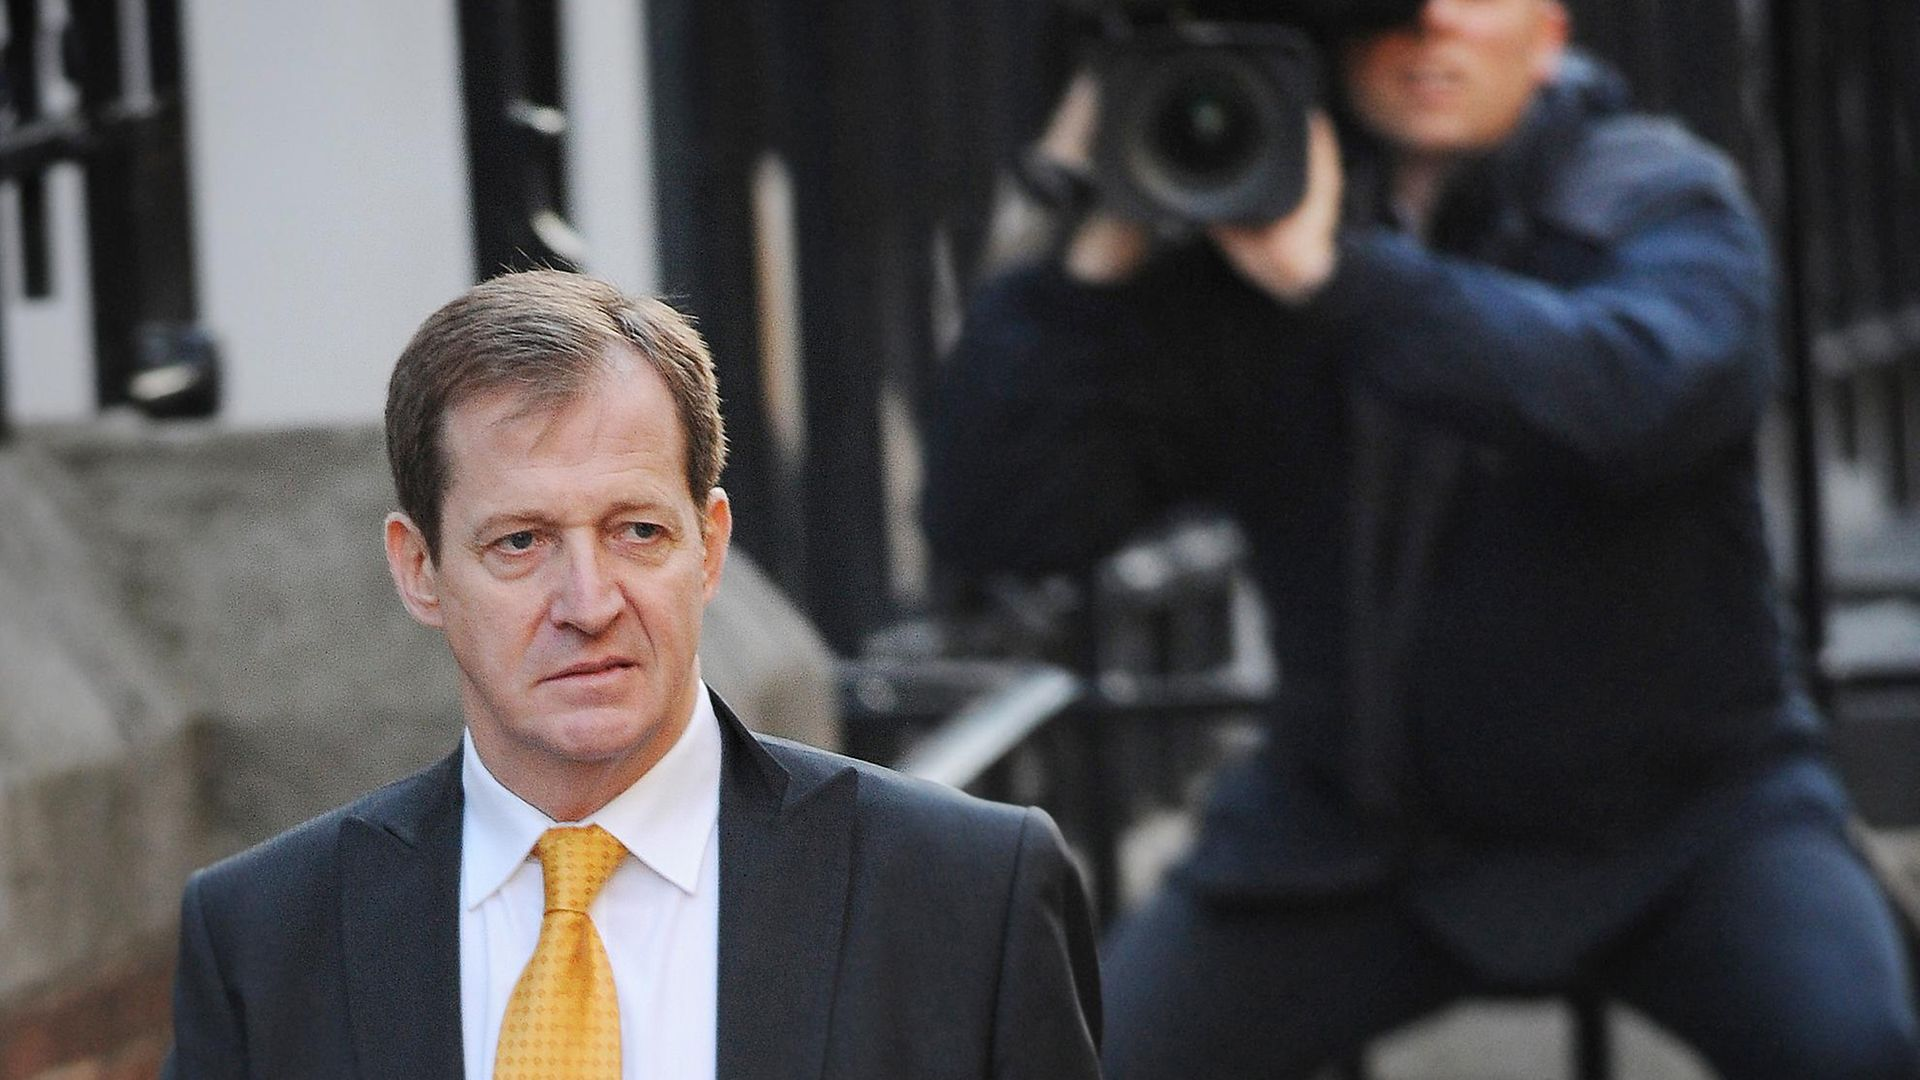 Alastair Campbell, former Director of Communications to Tony Blair, arrives at the High Court to give evidence to the Leveson Inquiry. - Credit: PA